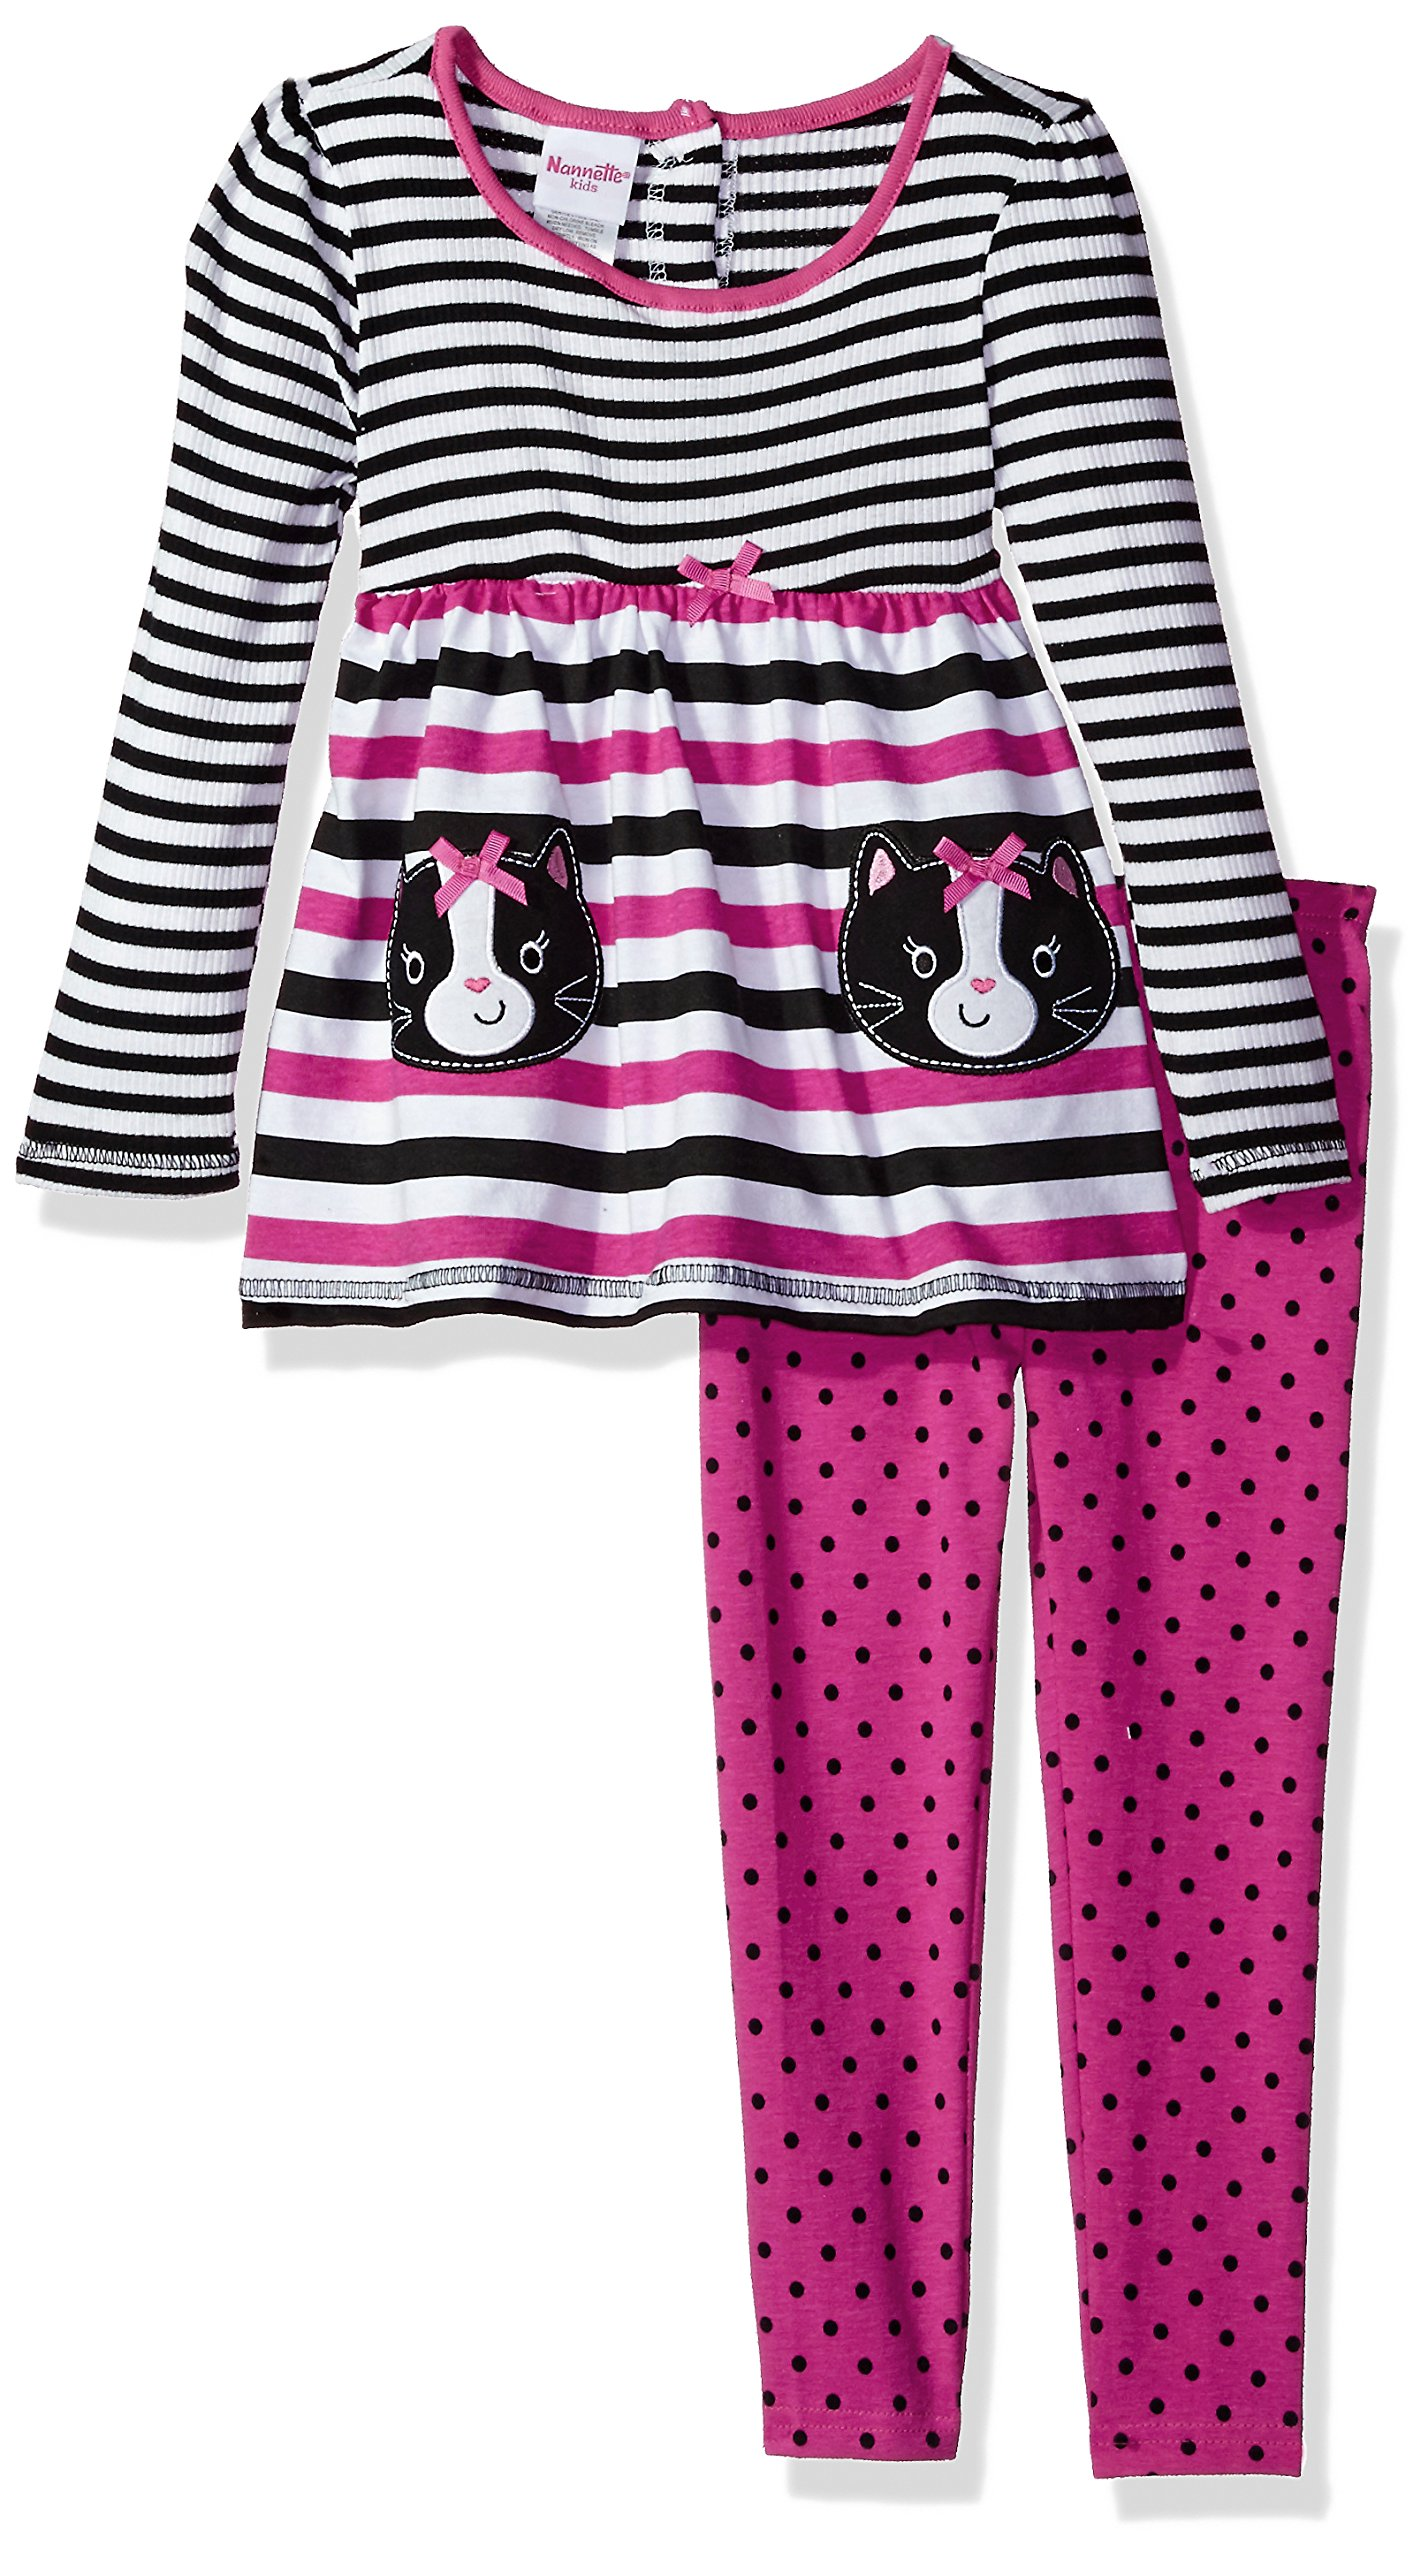 Nannette Little Girls 2 Piece Playwear Long Sleeve Top and Legging Set, Bright Pink/Black, 6